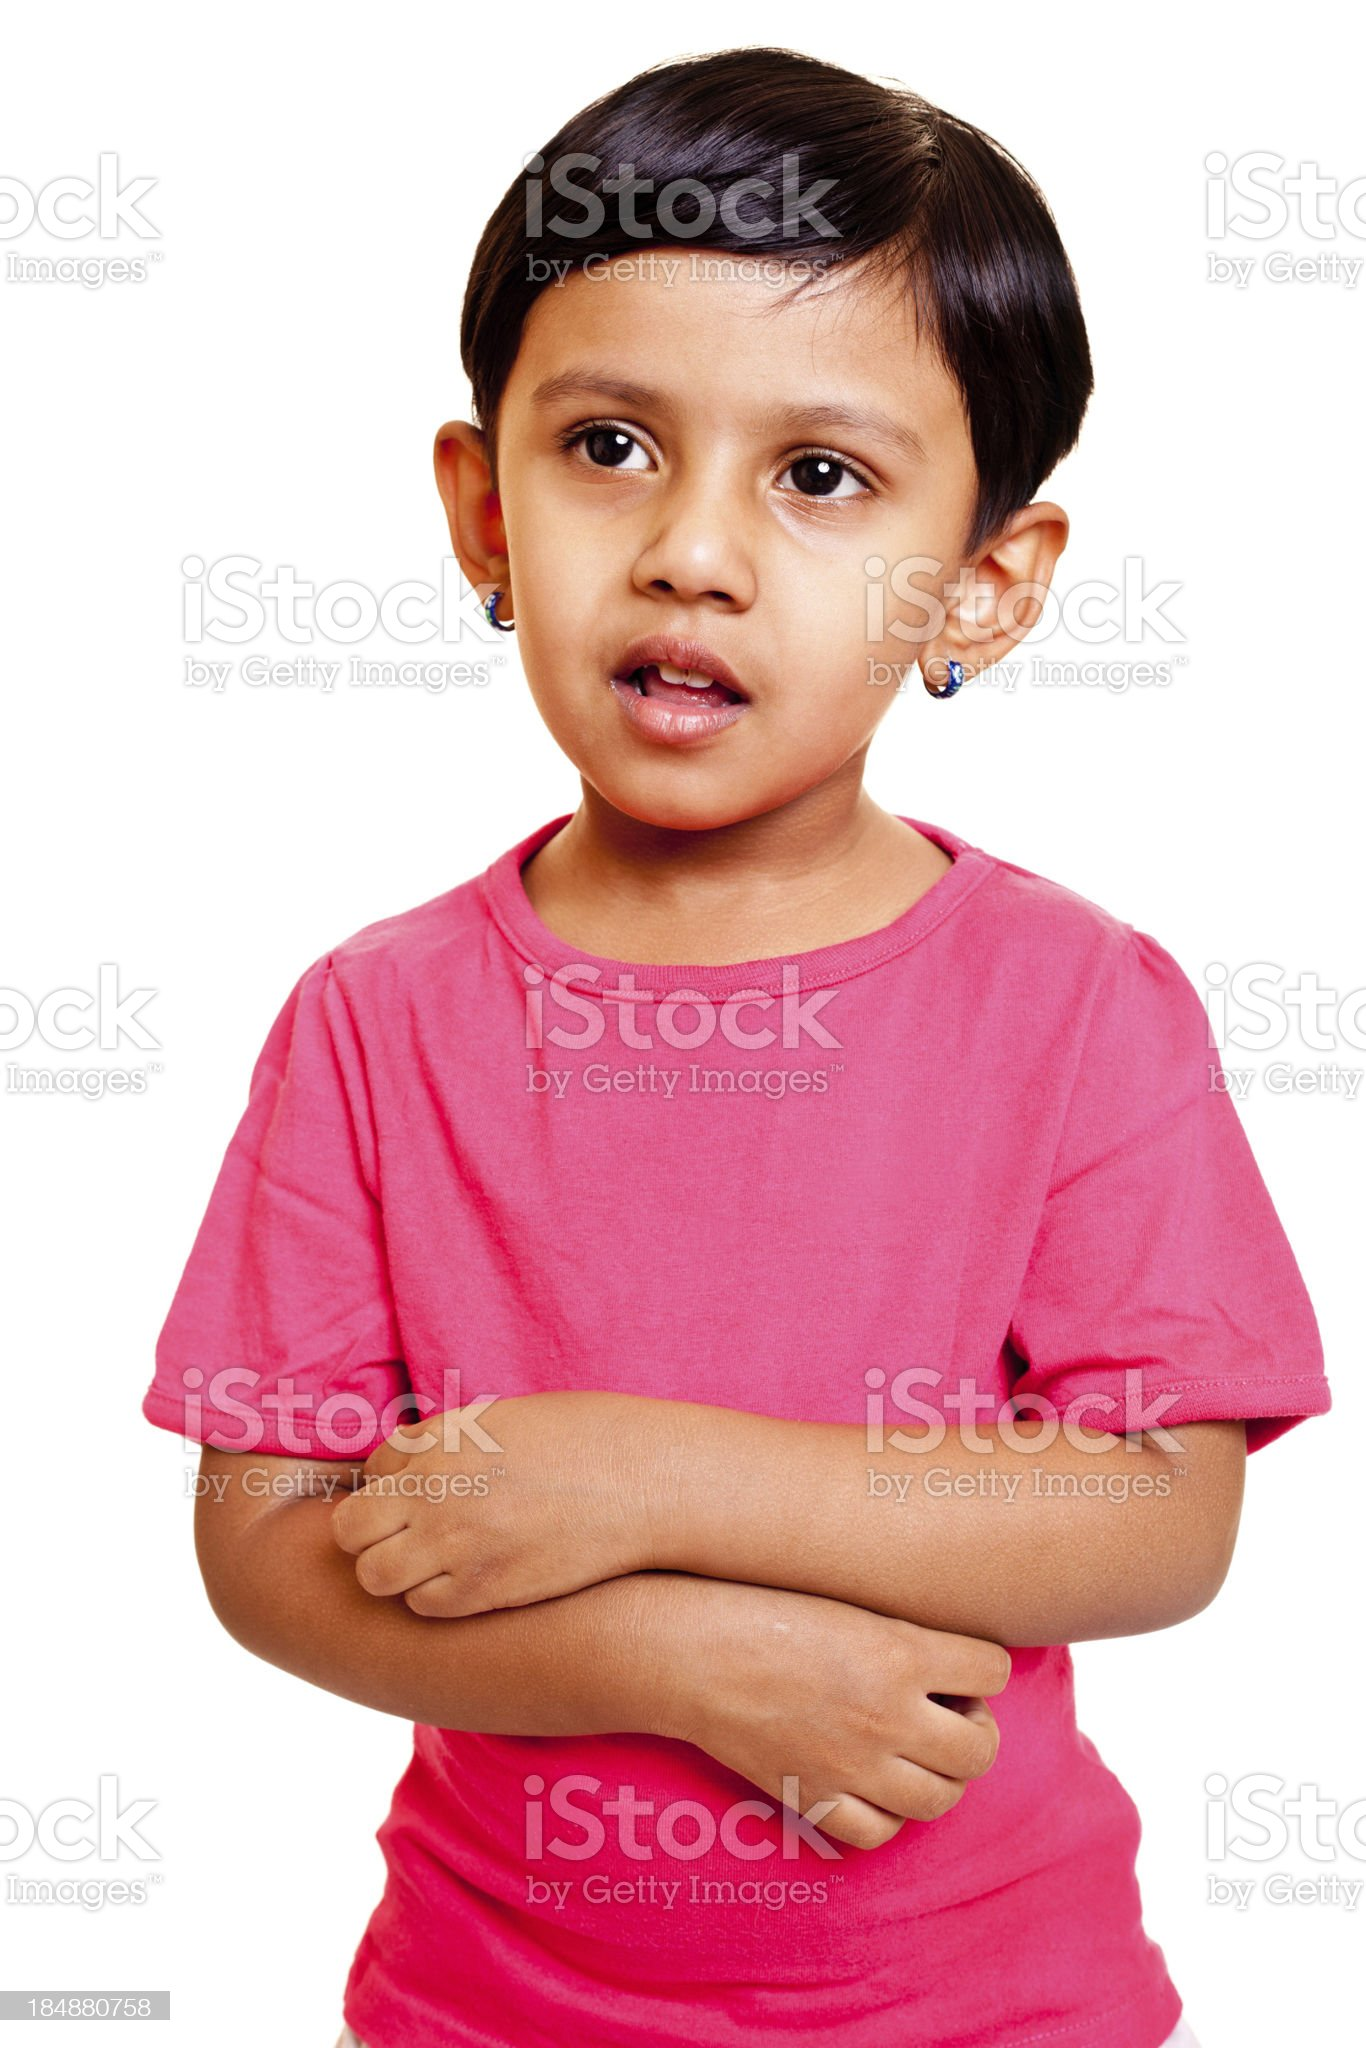 Isolated Portrait of little Indian girl royalty-free stock photo